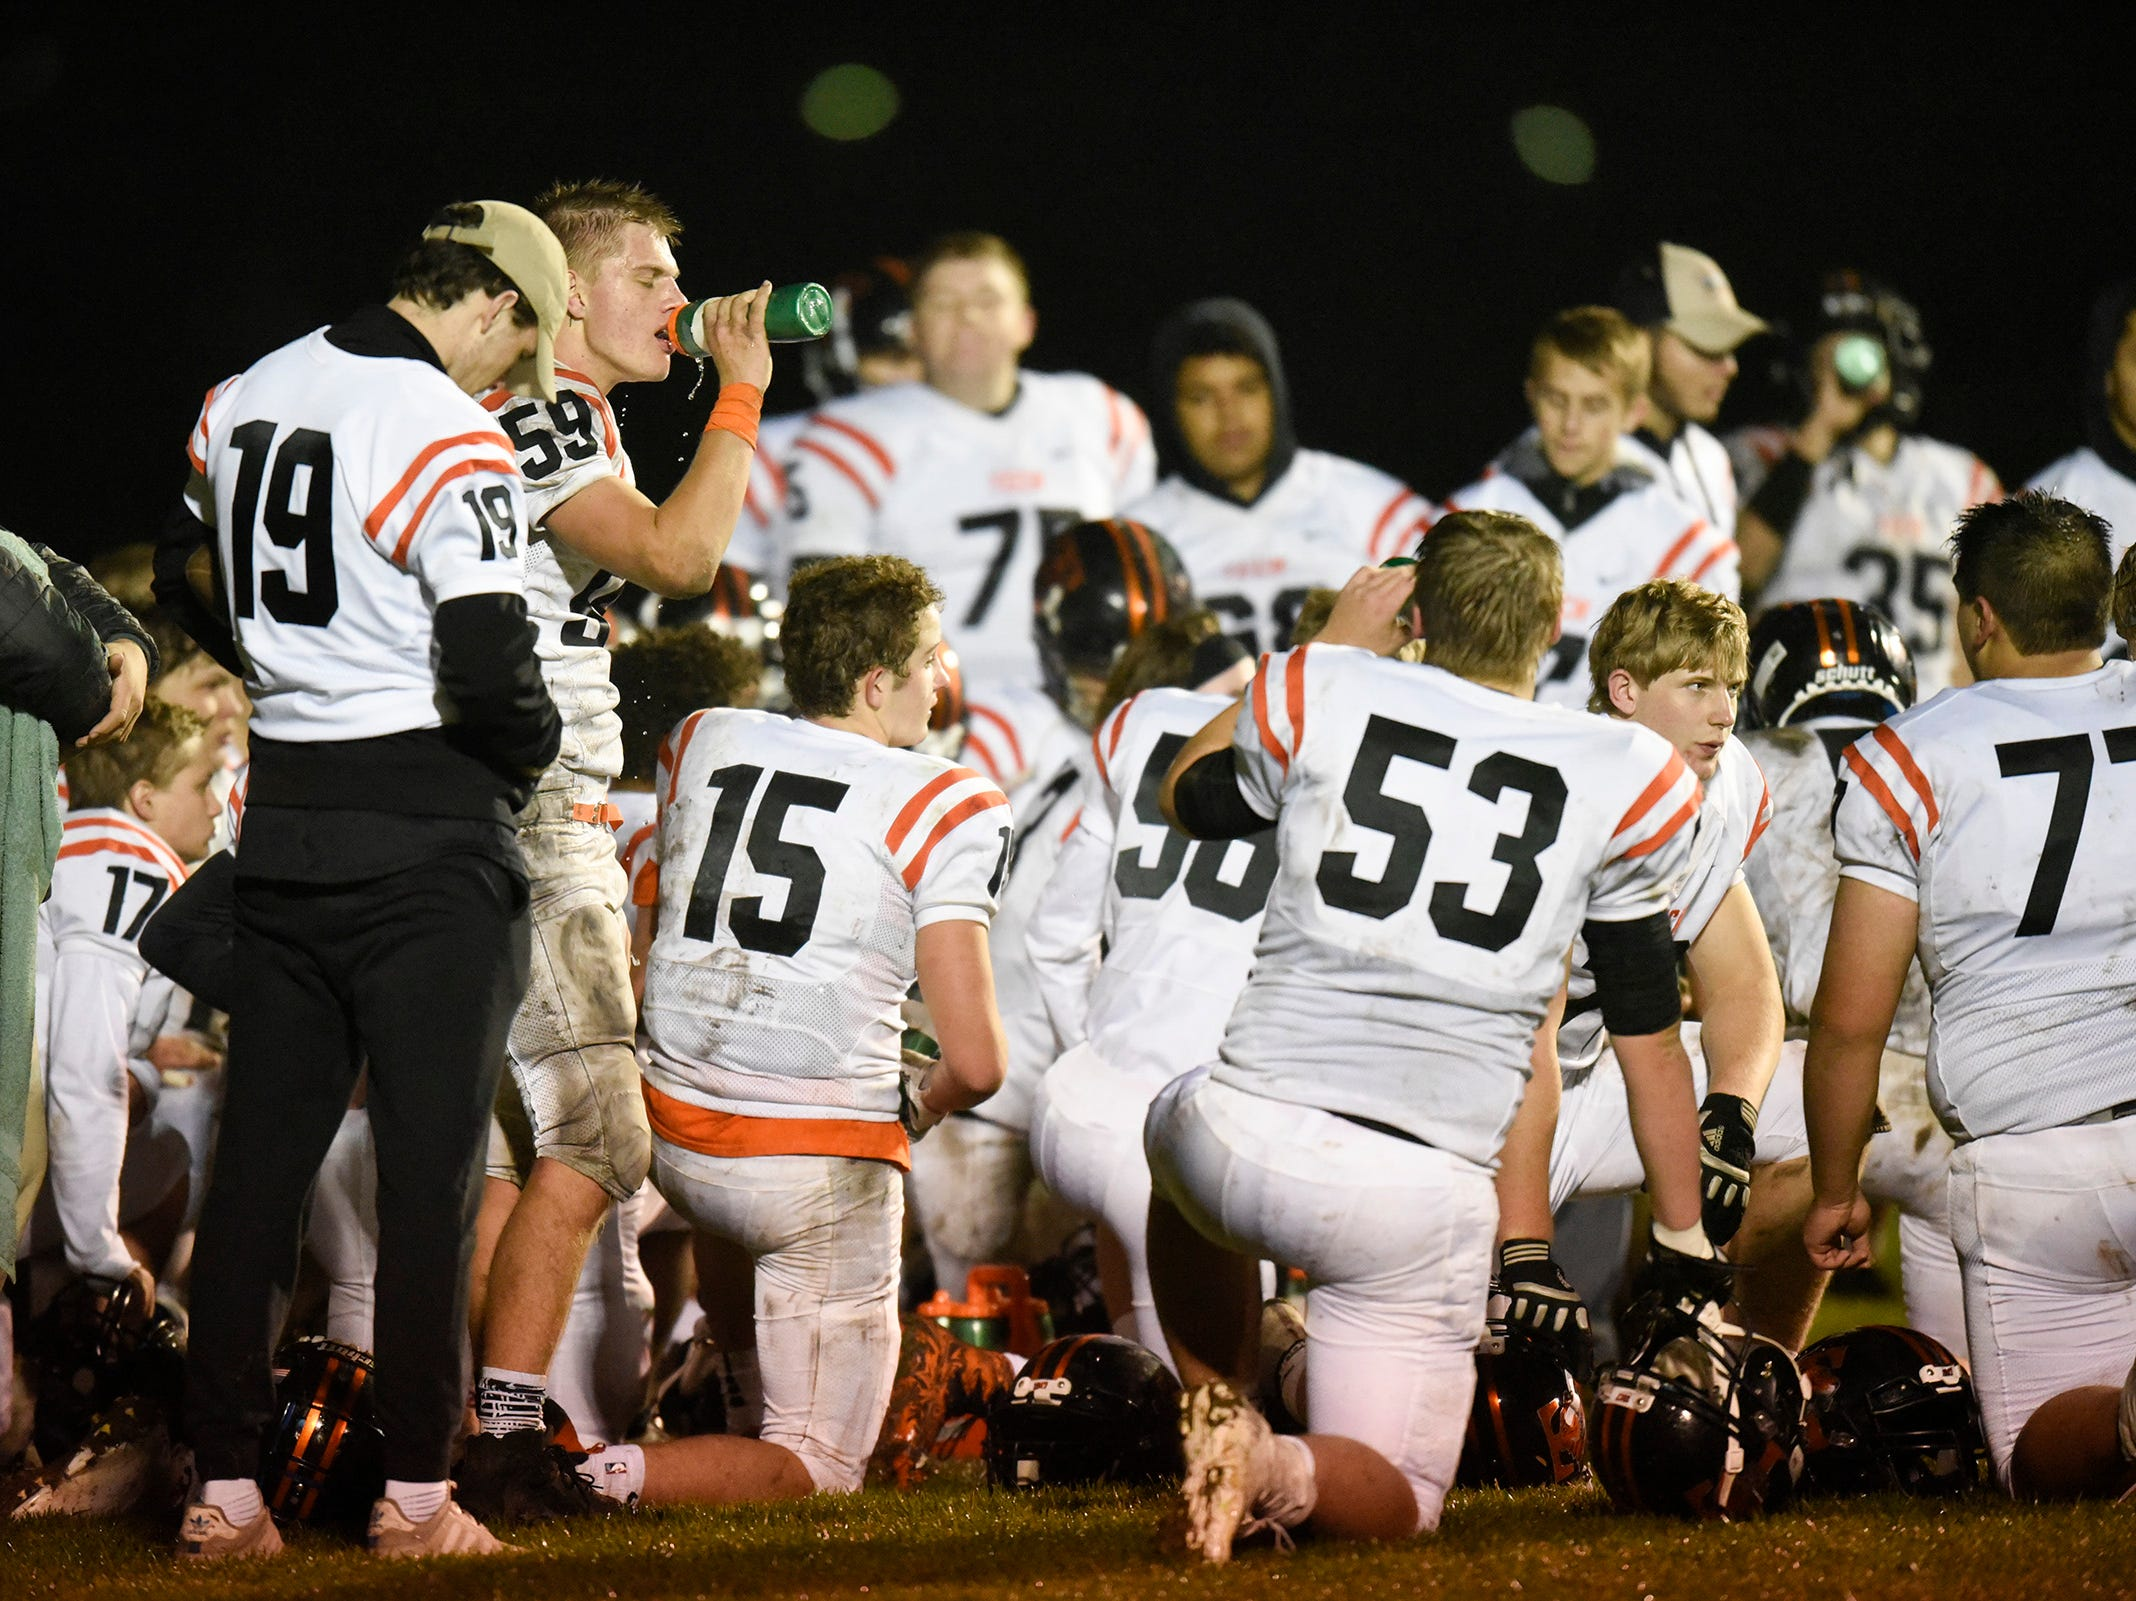 Tech players talk in the end zone during halftime against Sauk Rapids Friday, Oct. 5, in Sauk Rapids.